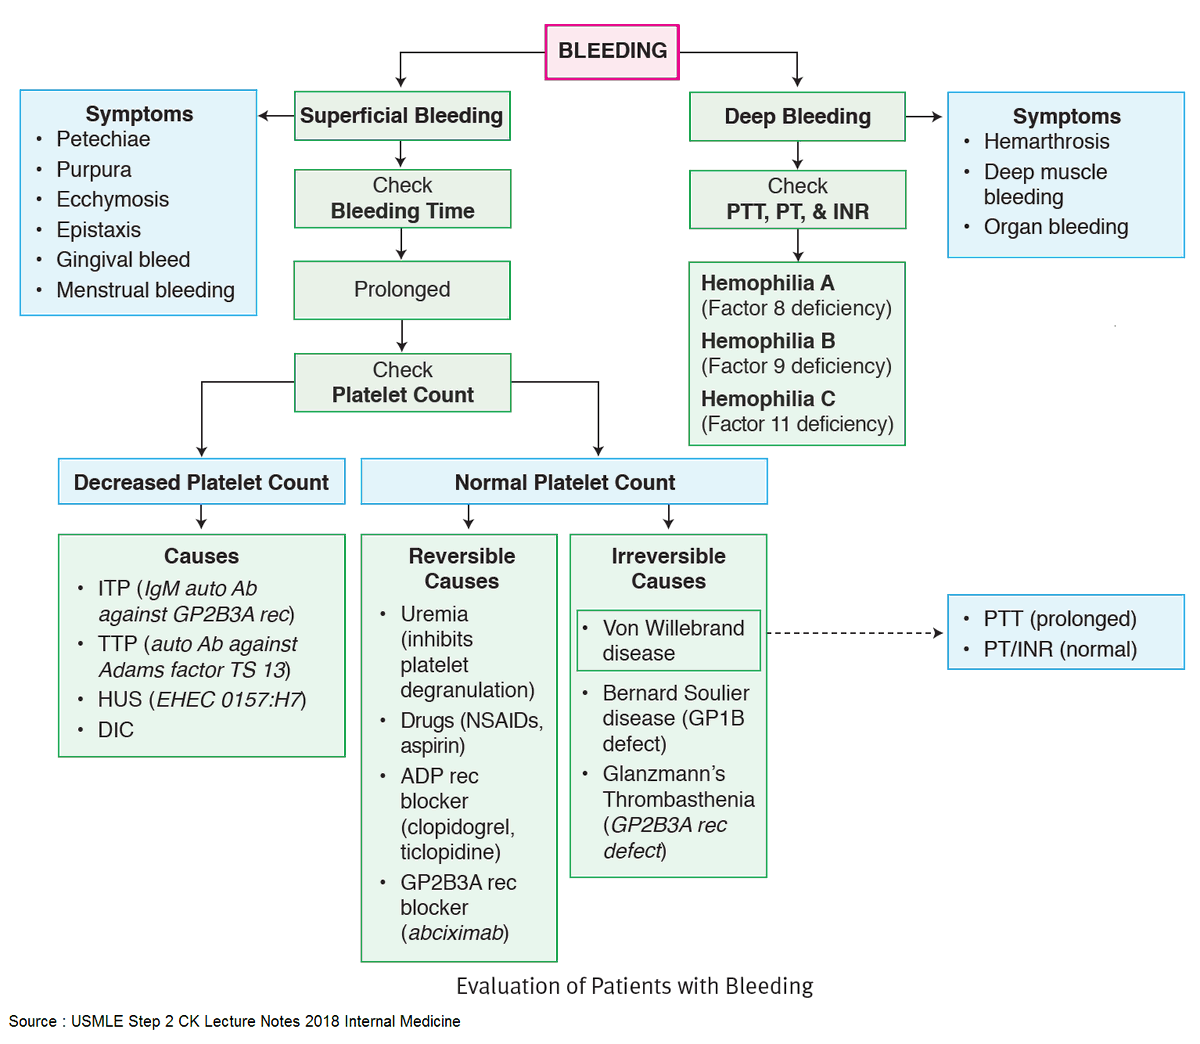 💠 Evaluation of Patients with Spontaneous Bleeding  #medtwitter #meded #foamed #hematology